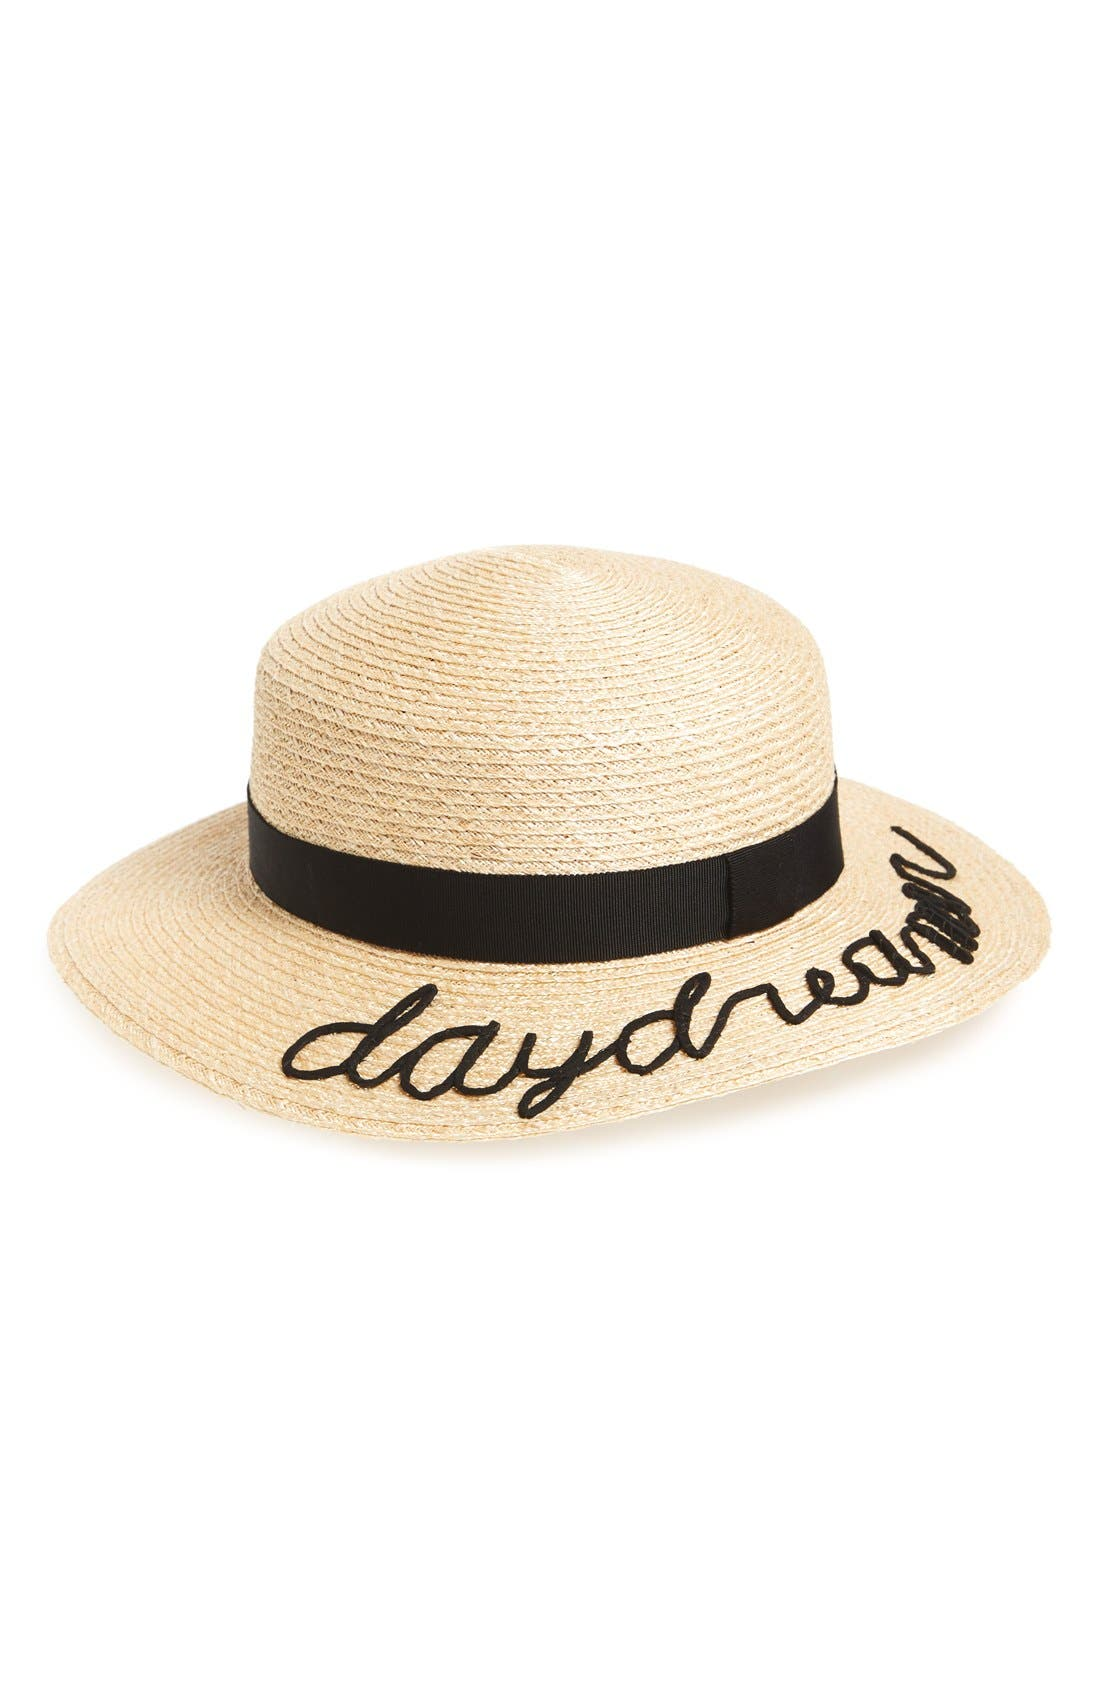 'Daydreamer' Straw Boater Hat,                         Main,                         color, 251